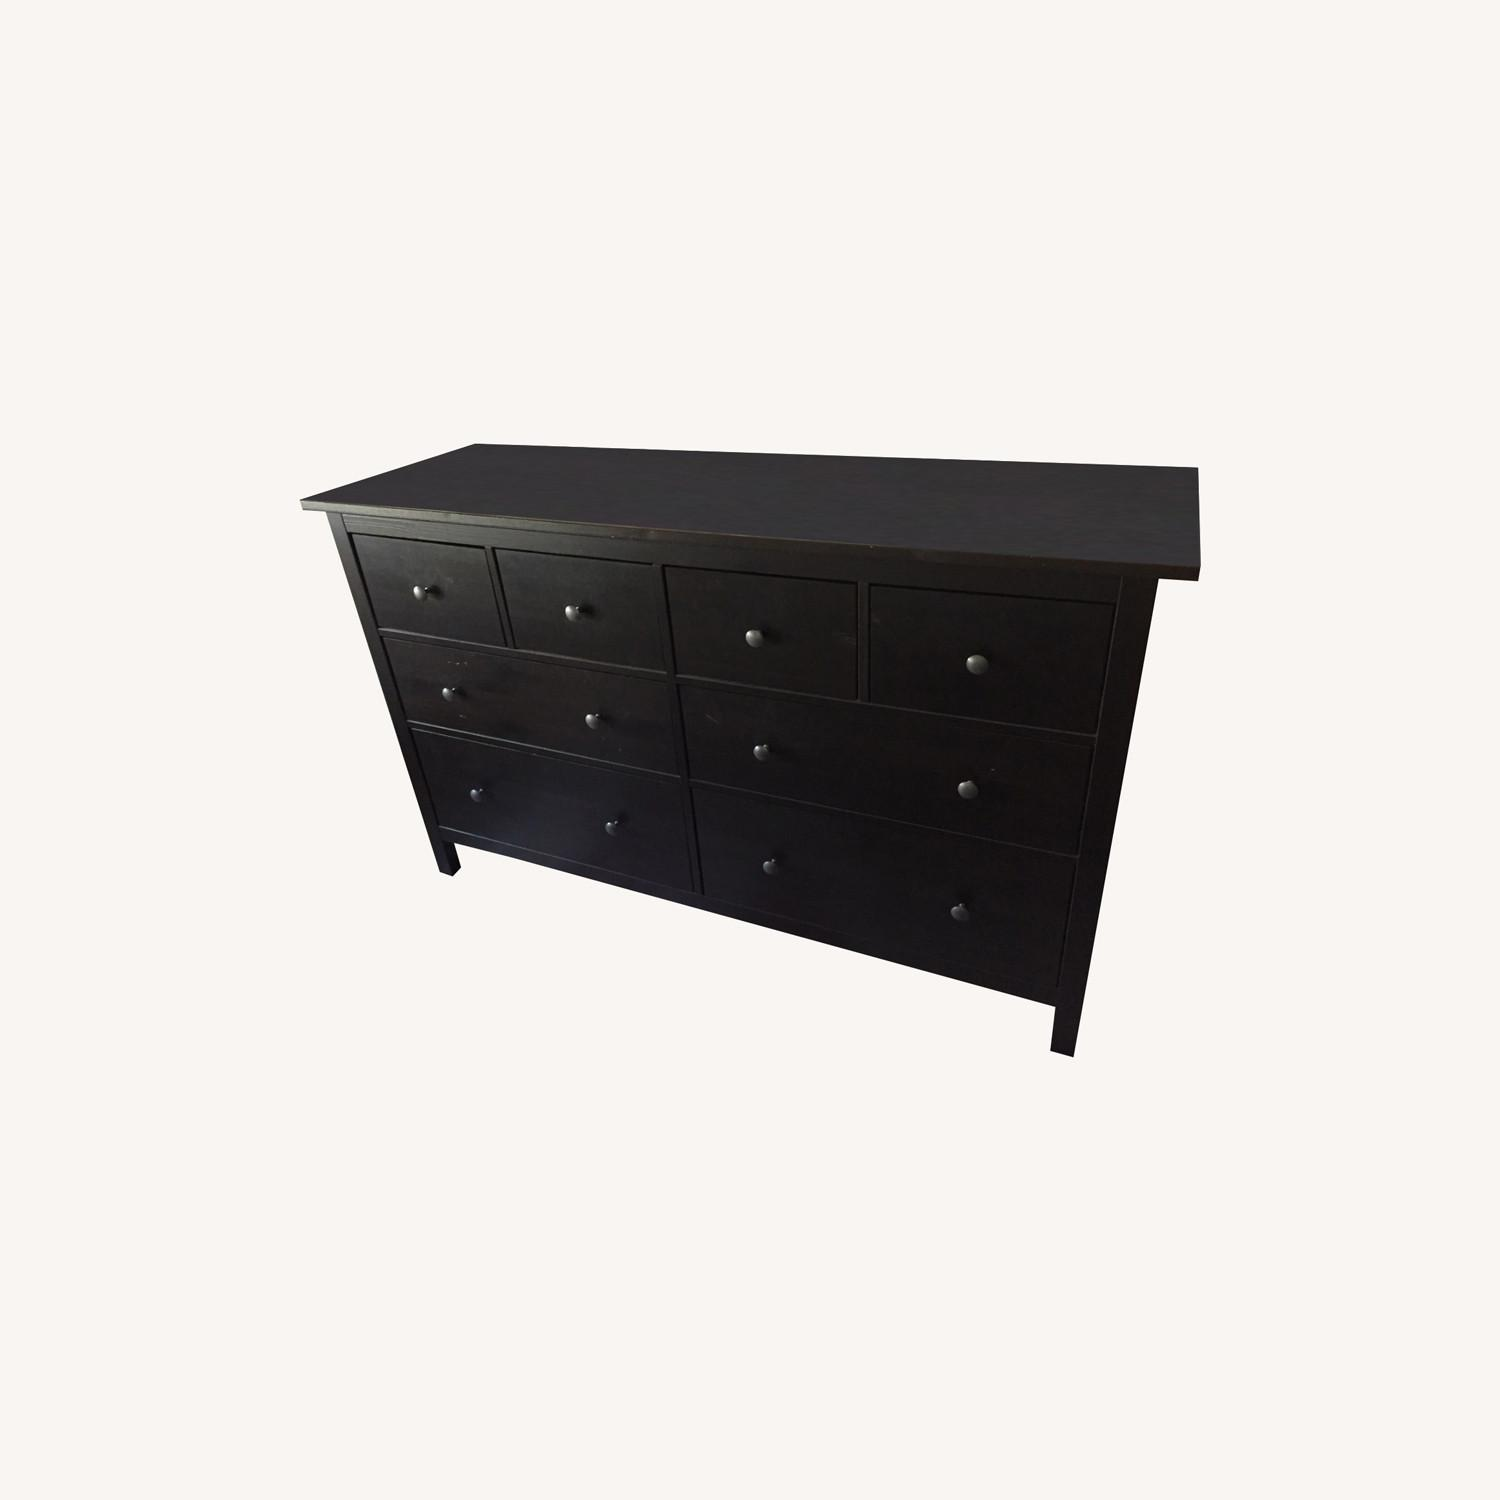 IKEA Black Hemnes 8 Drawer Dresser - image-0